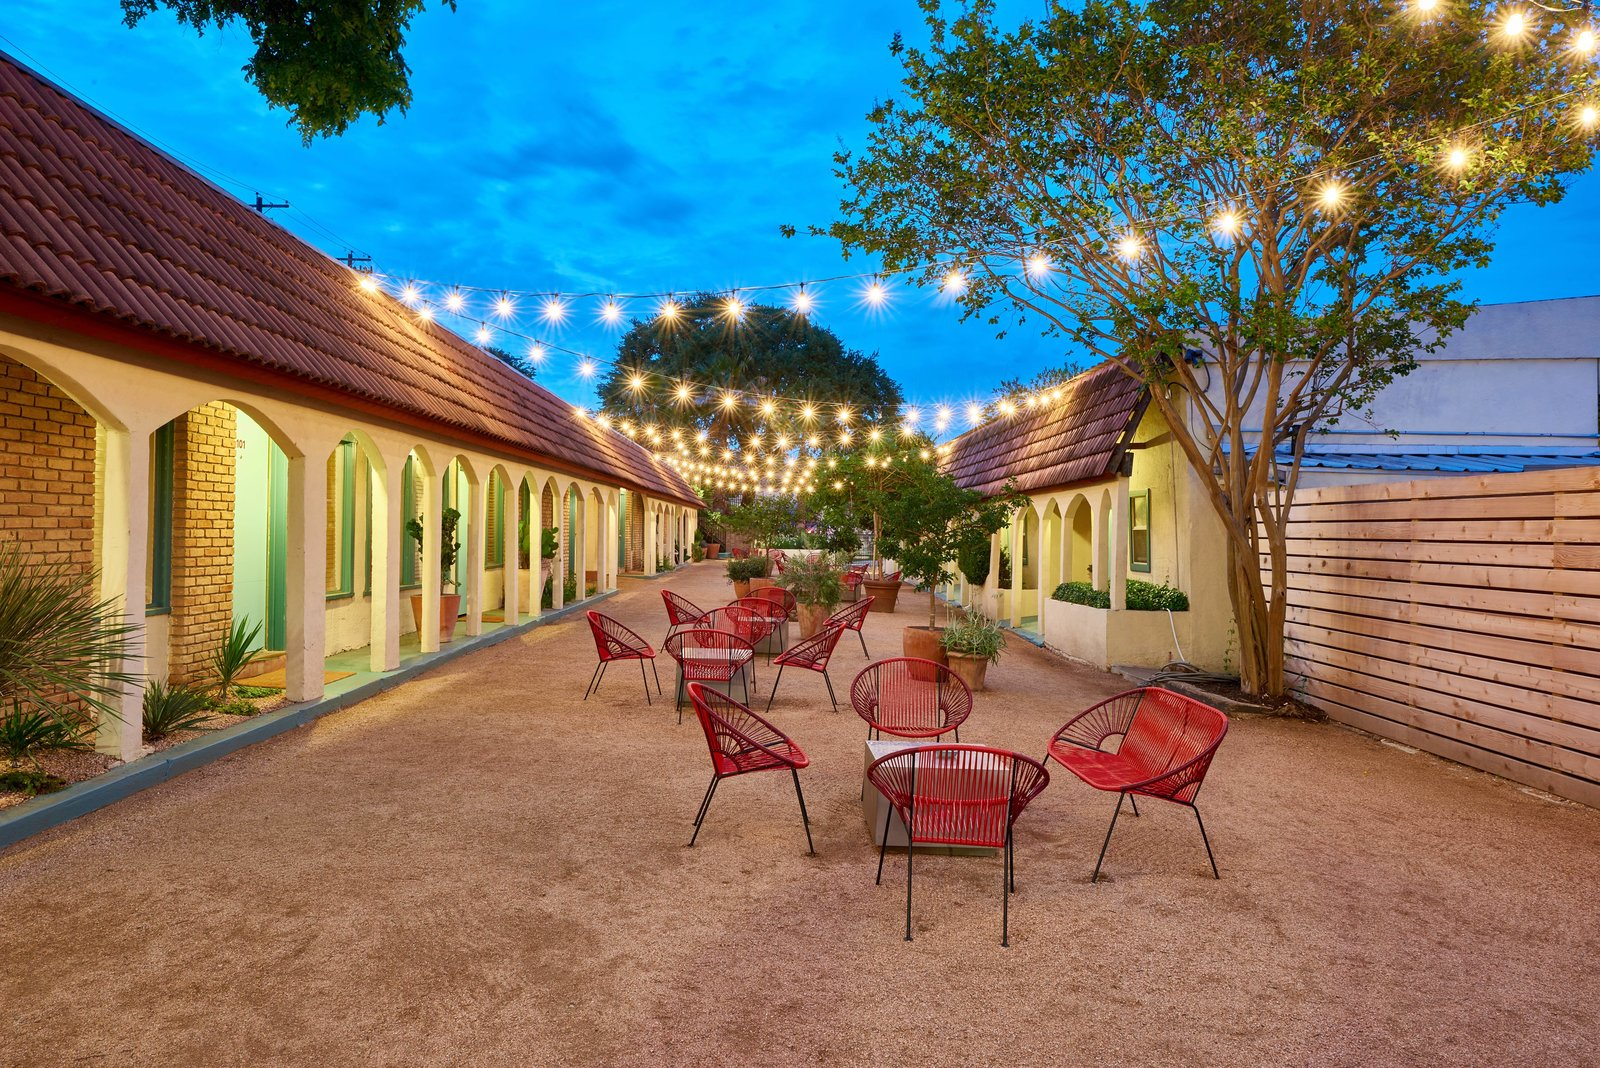 Outdoor, Side Yard, Horizontal Fences, Wall, Large Patio, Porch, Deck, Trees, Wood Fences, Wall, Hanging Lighting, and Raised Planters  Photo 7 of 13 in The Rejuvenated Austin Motel Welcomes Guests With Upbeat, Midcentury-Modern Vibes